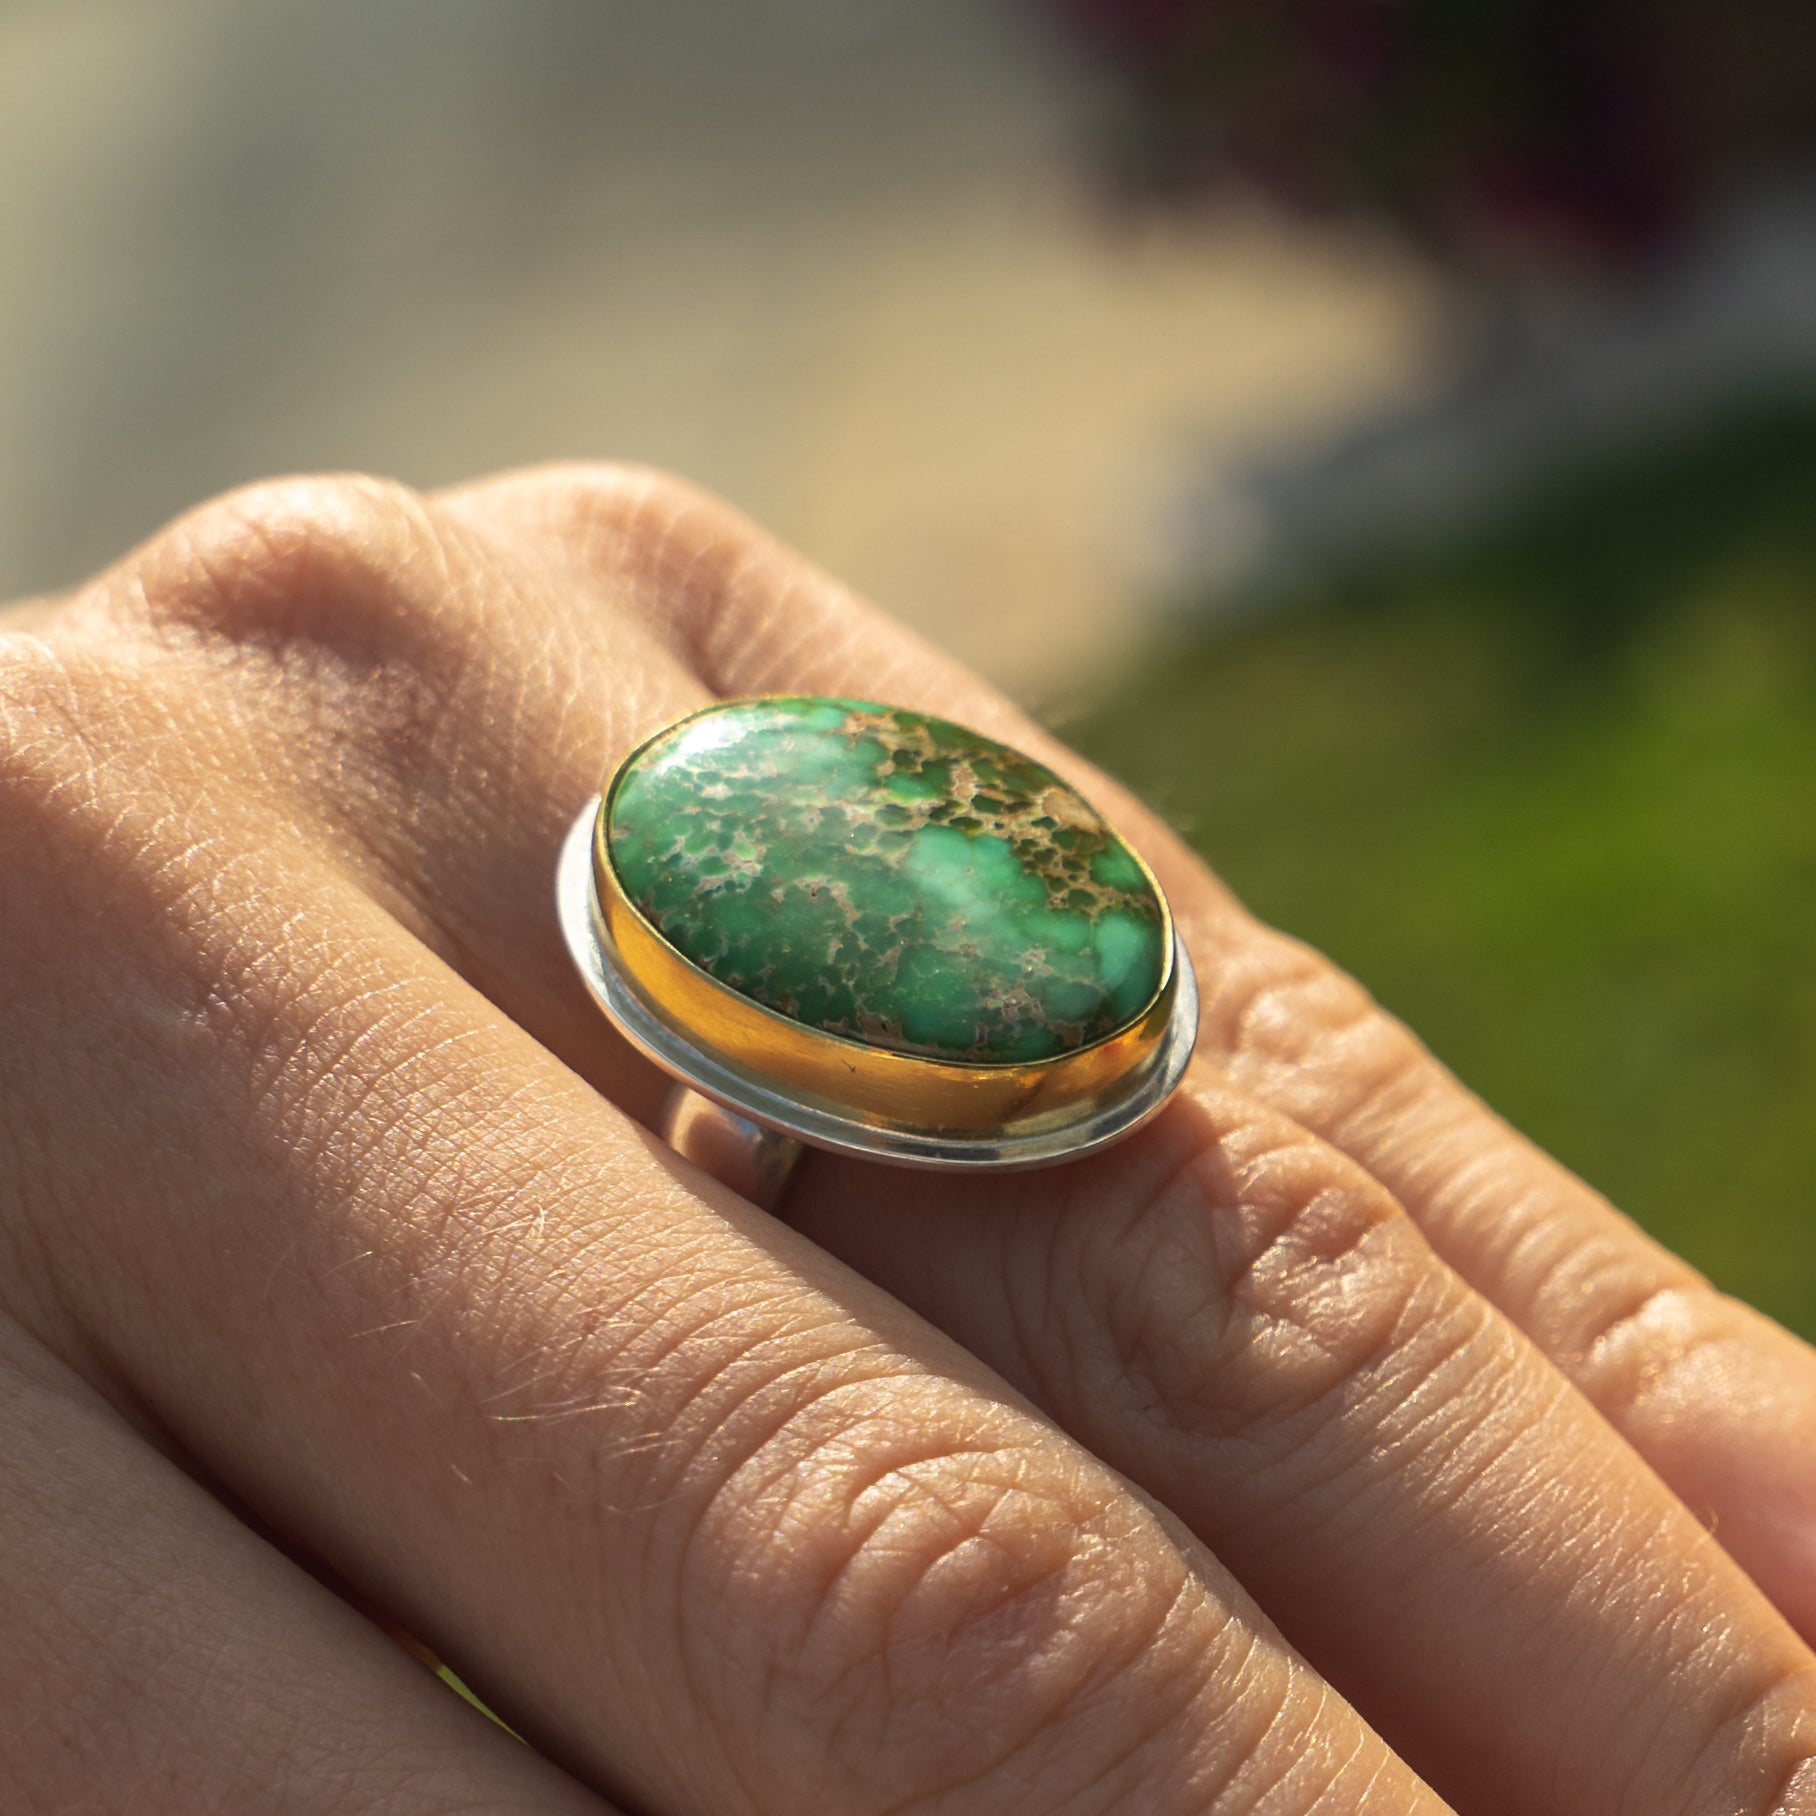 Natural Carico Lake Green Turquoise Ring in 22k Gold with Silver Band,  Size UK P - US 7 3/4